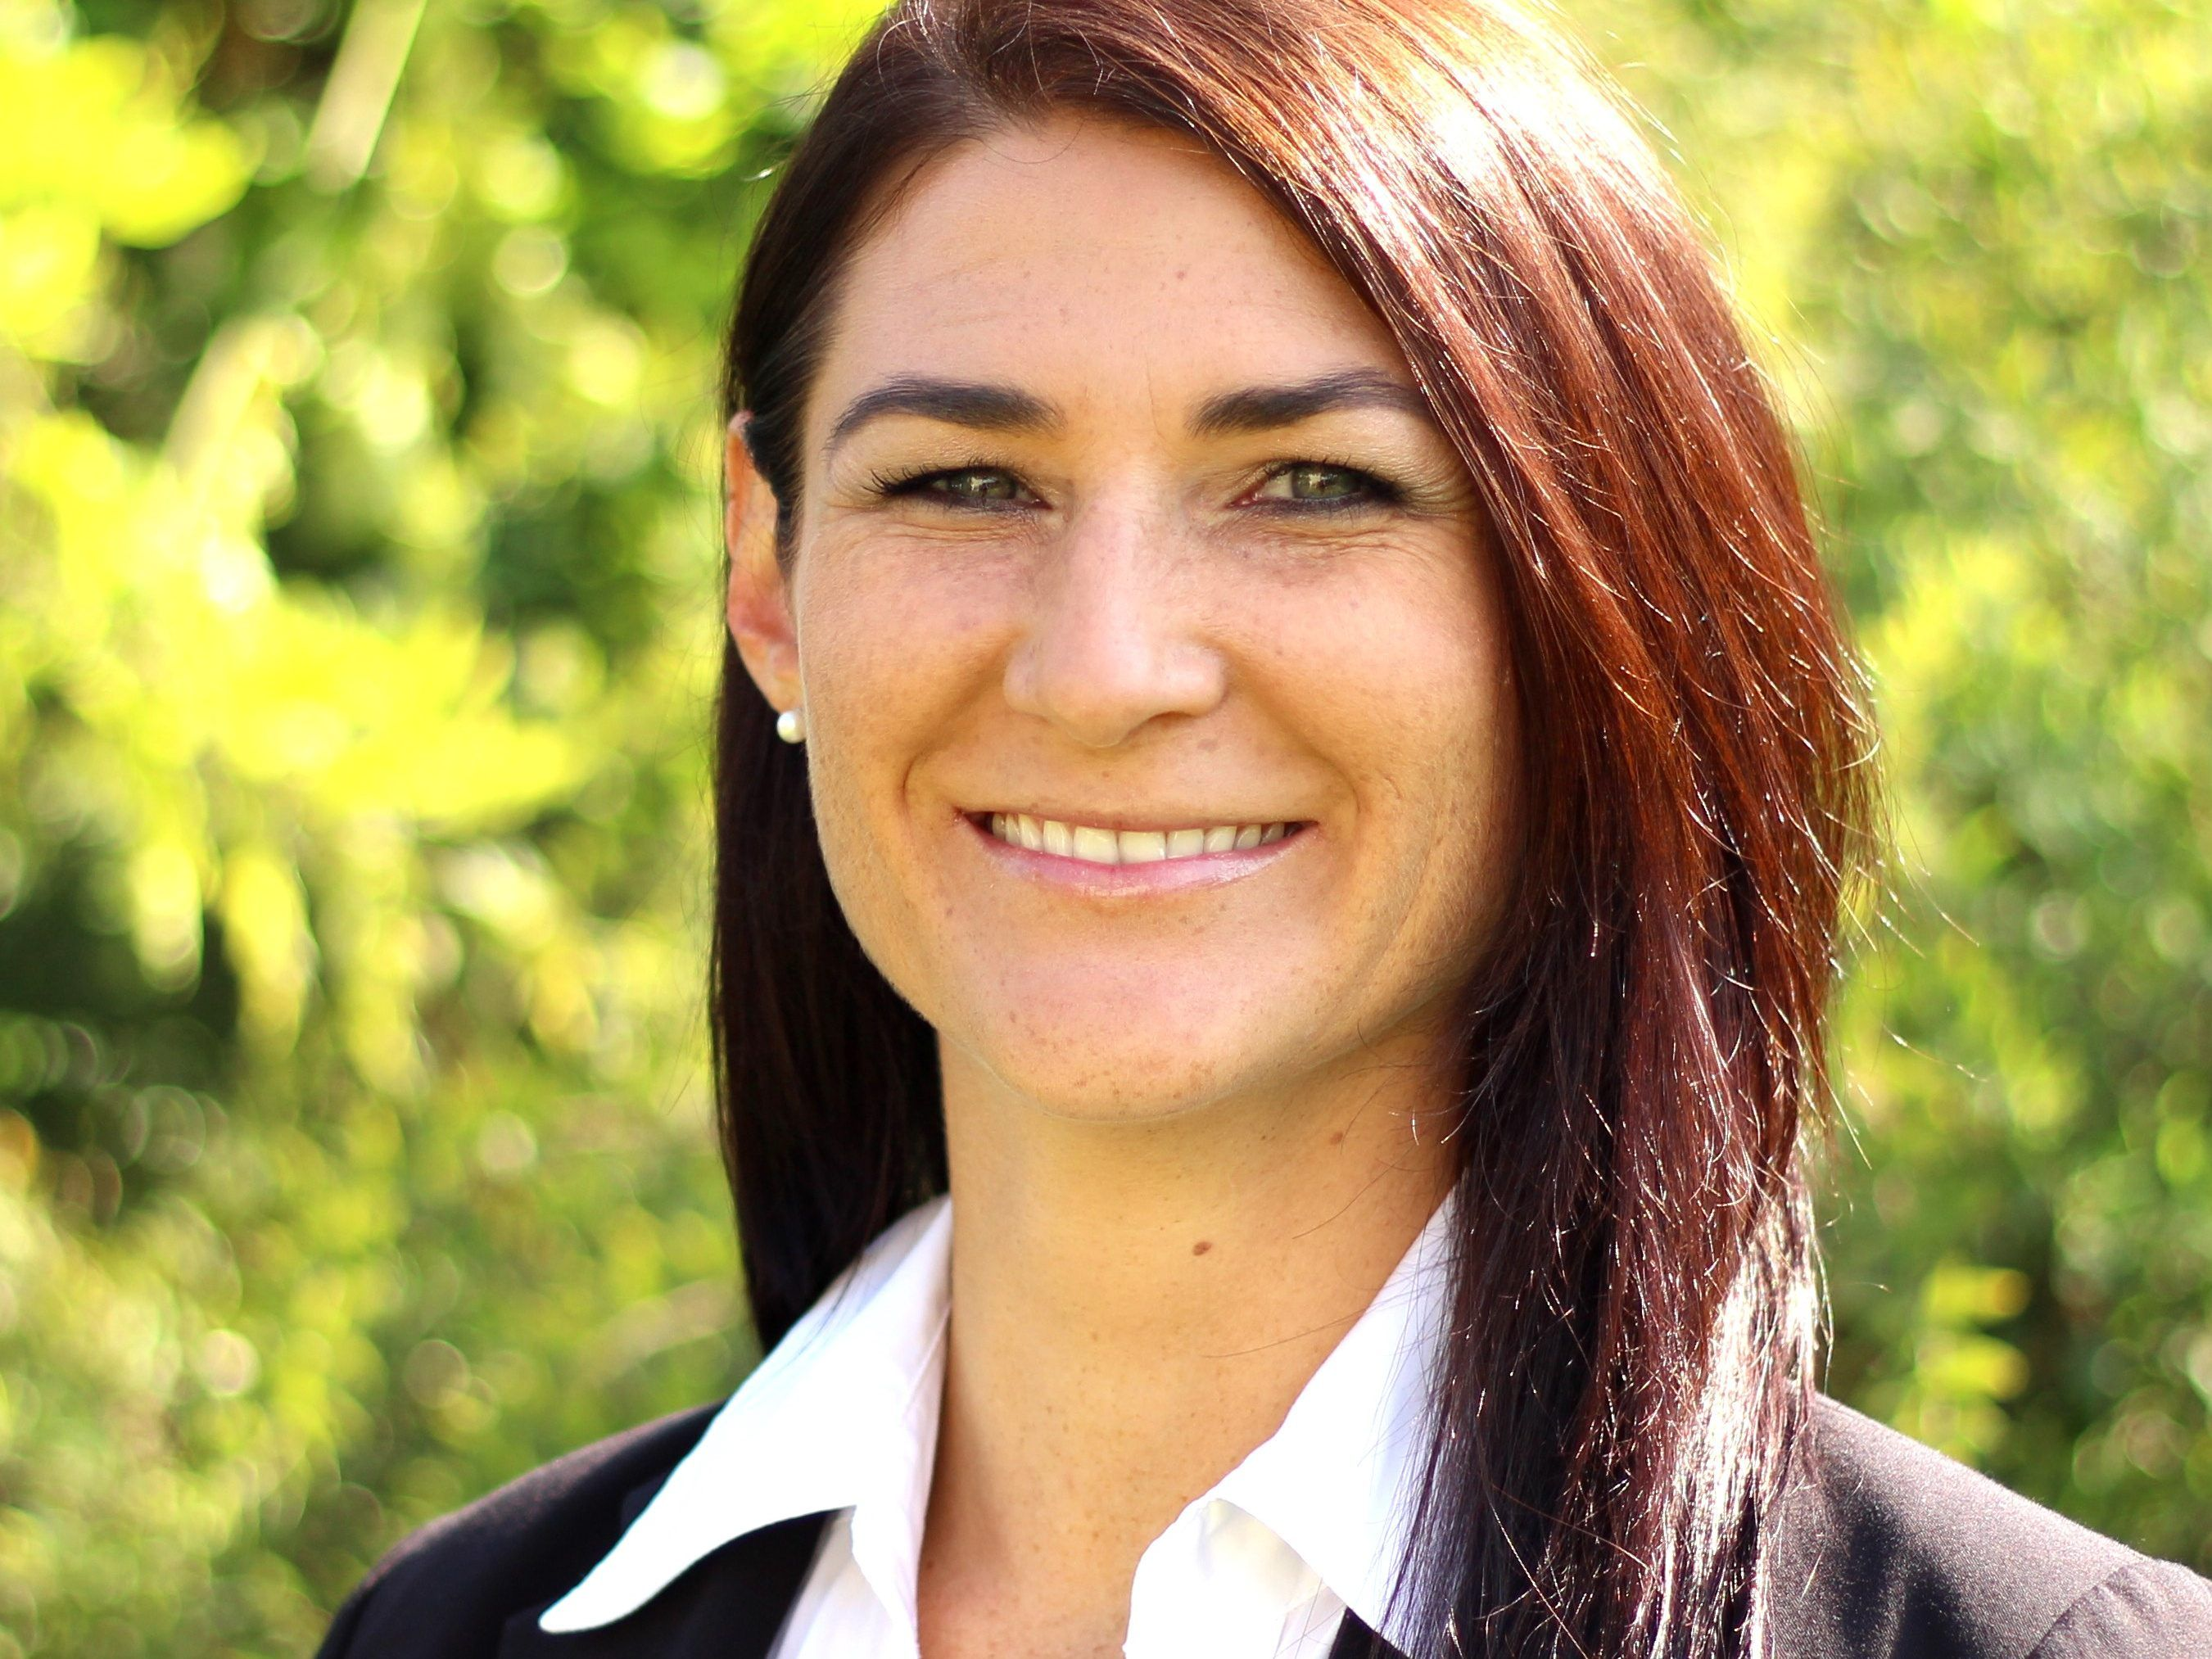 Janine Nagel ist neue Personal-Leiterin bei Loacker Recycling.